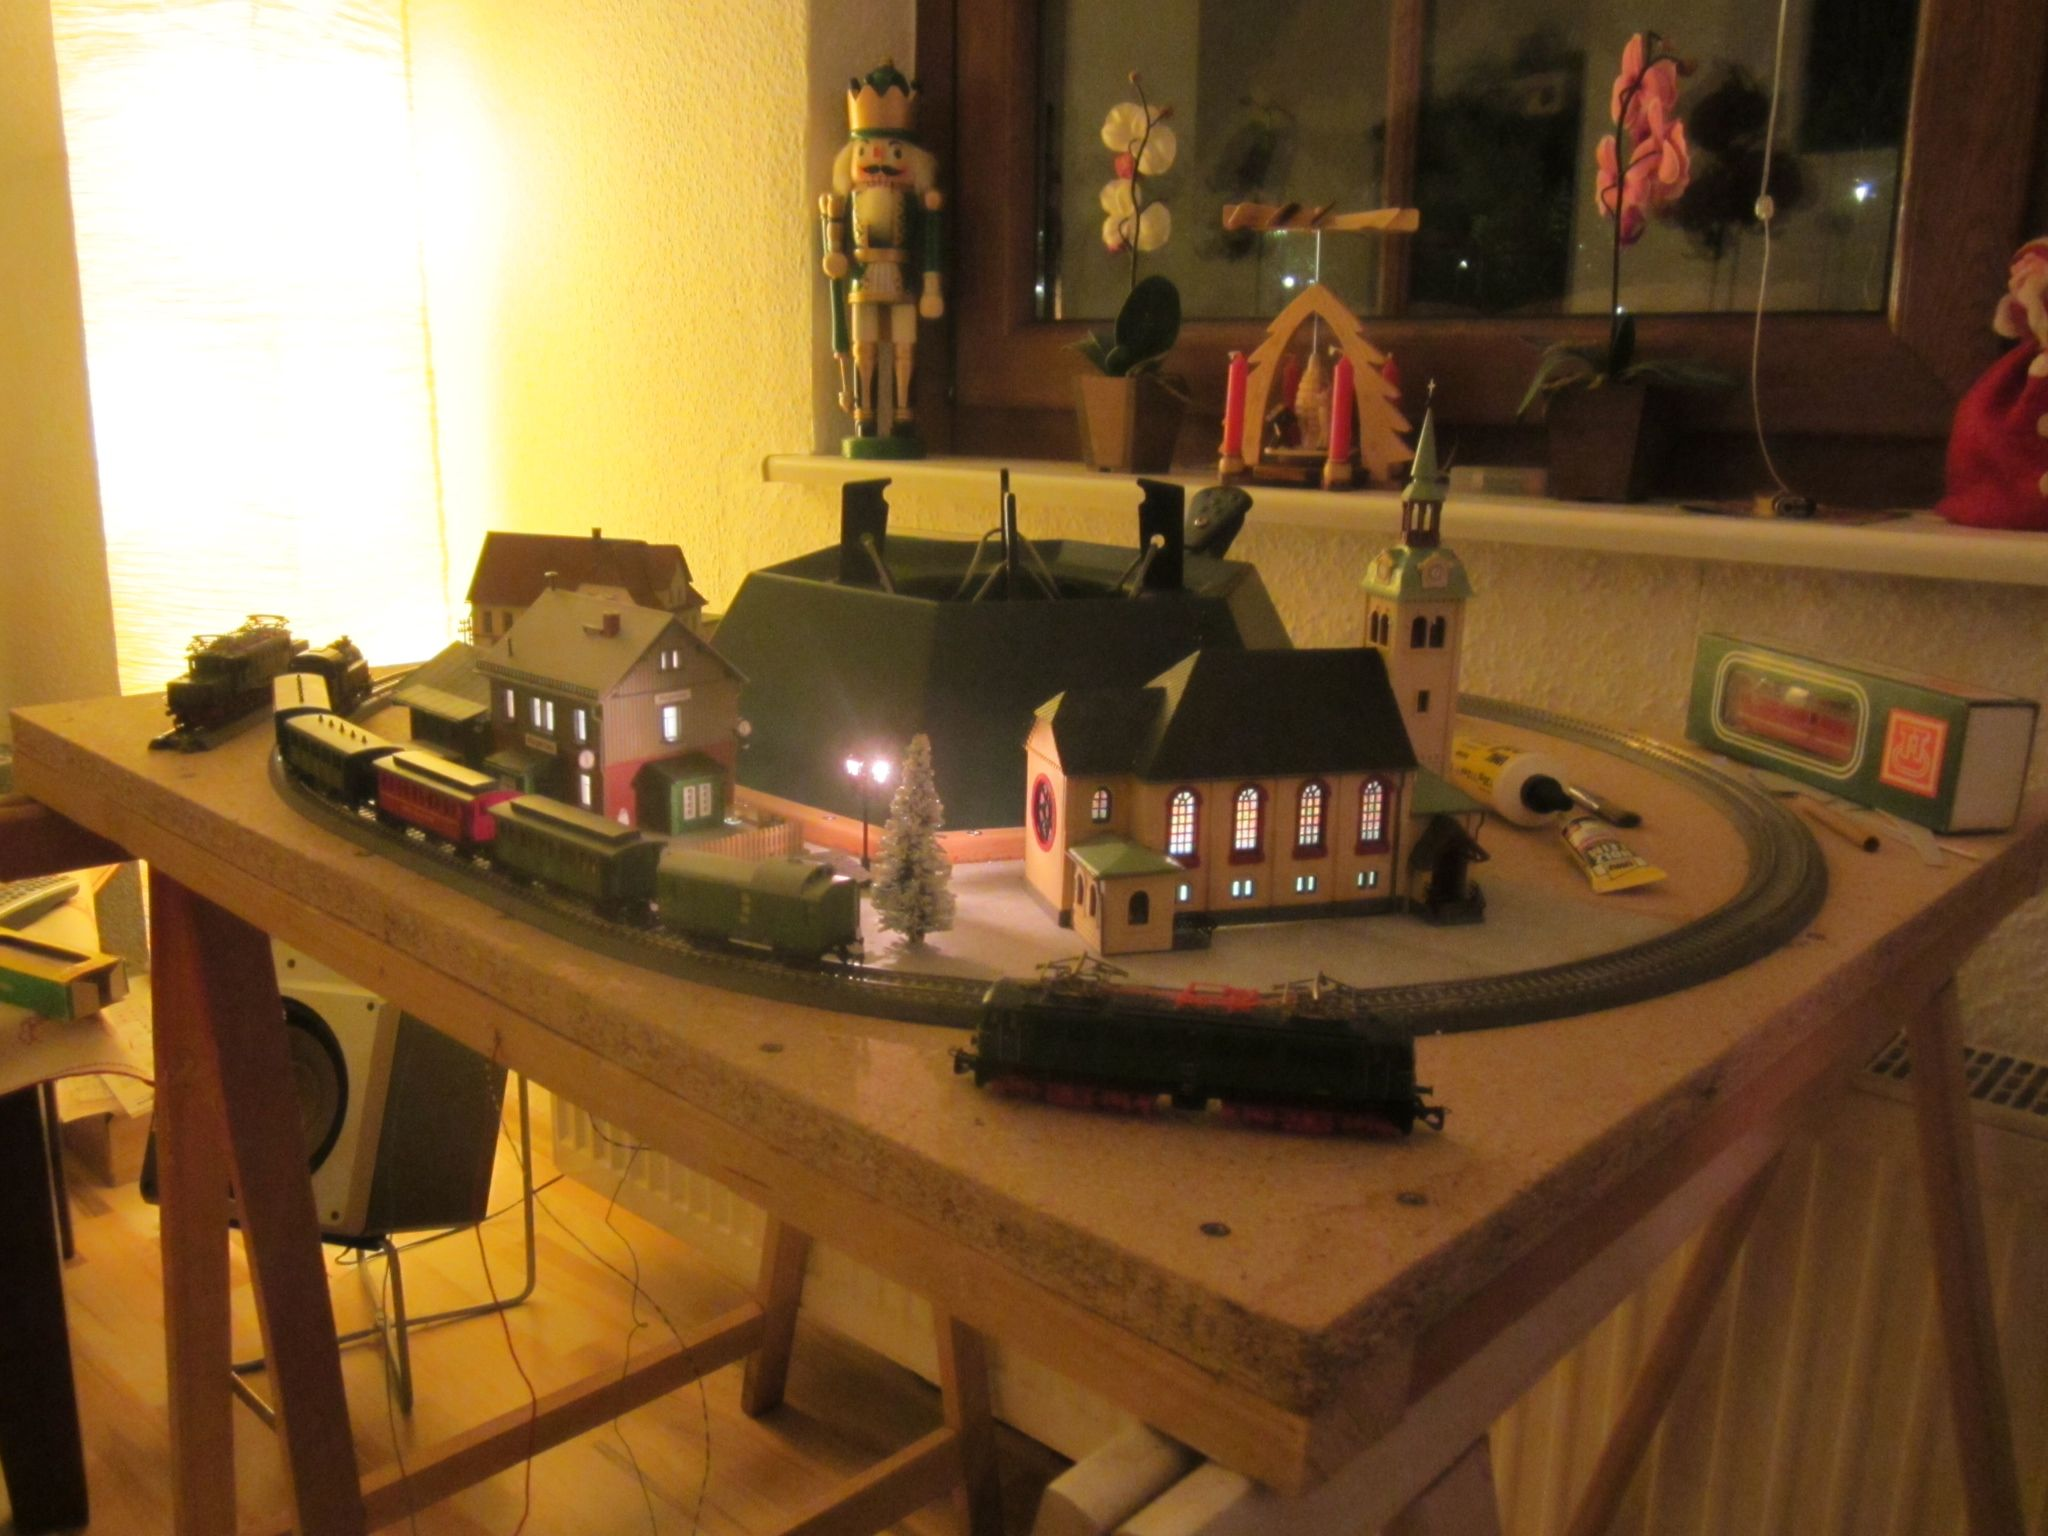 Christmas train in the construction